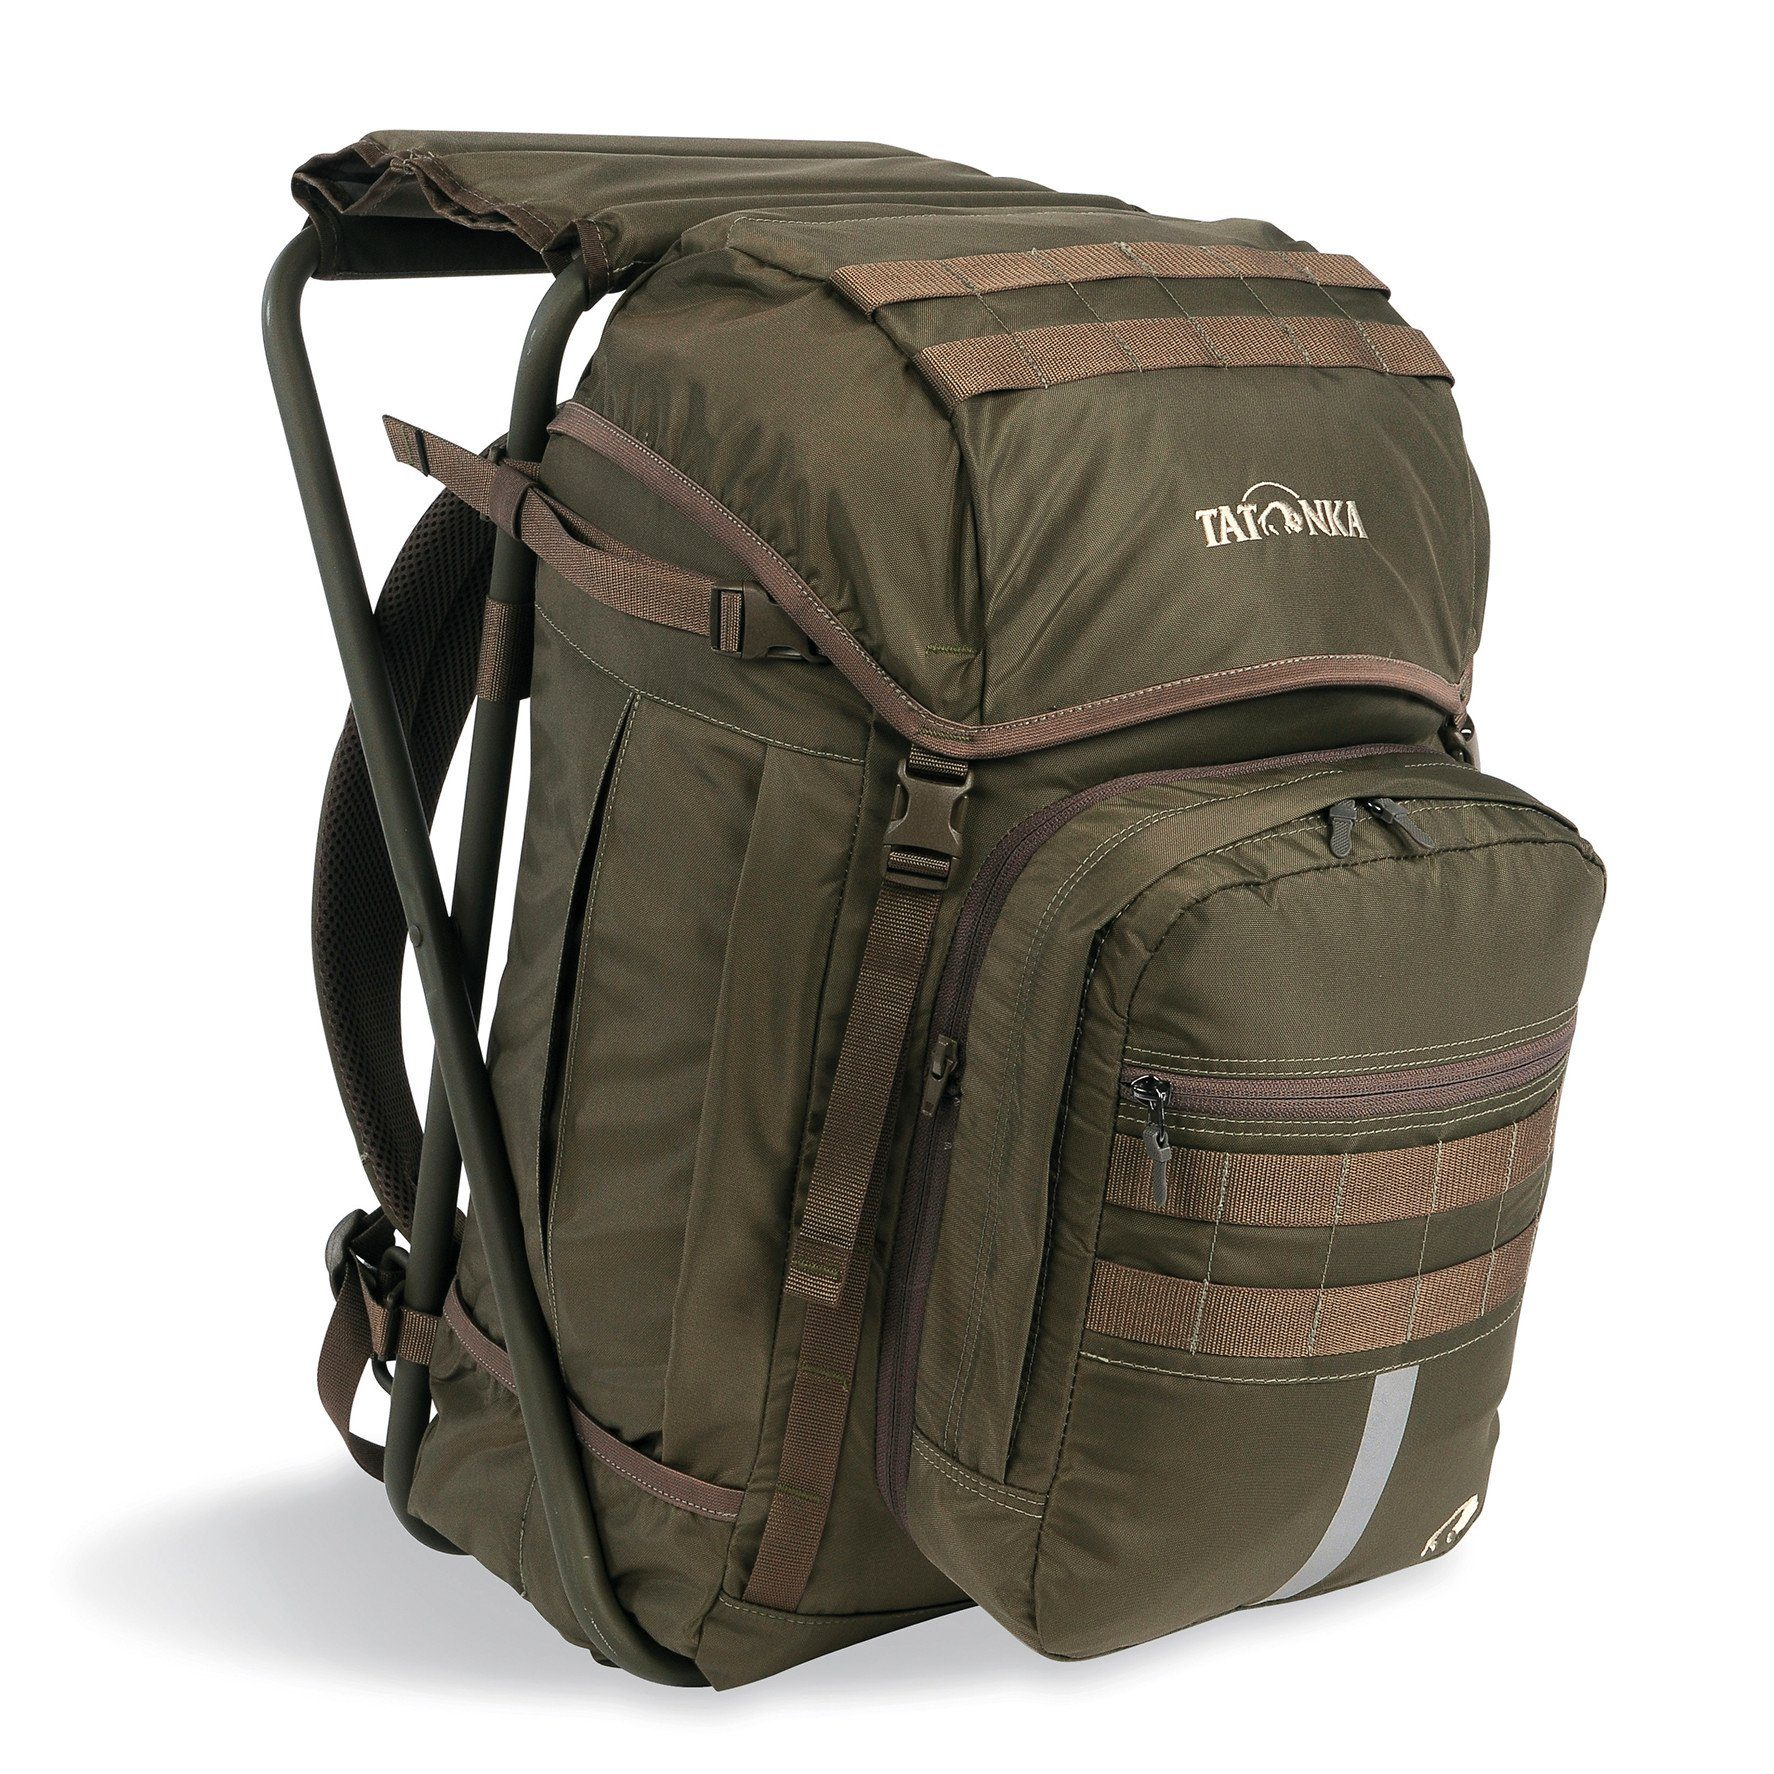 TATONKA® Wanderrucksack »Petri Chair«